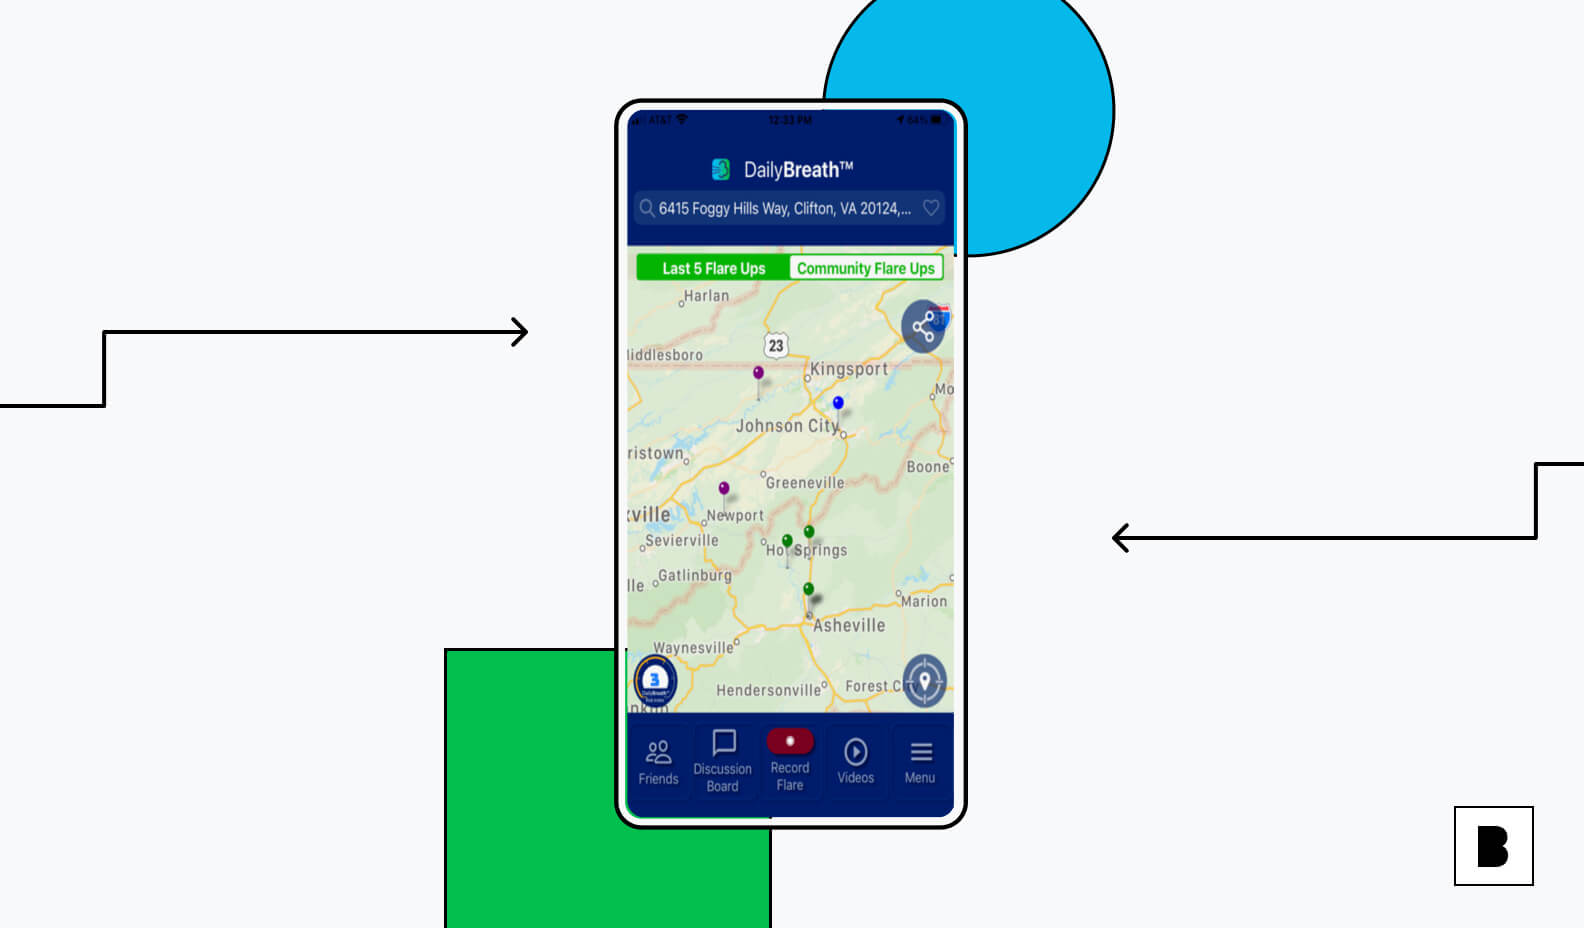 Daily Breath app screen with location map